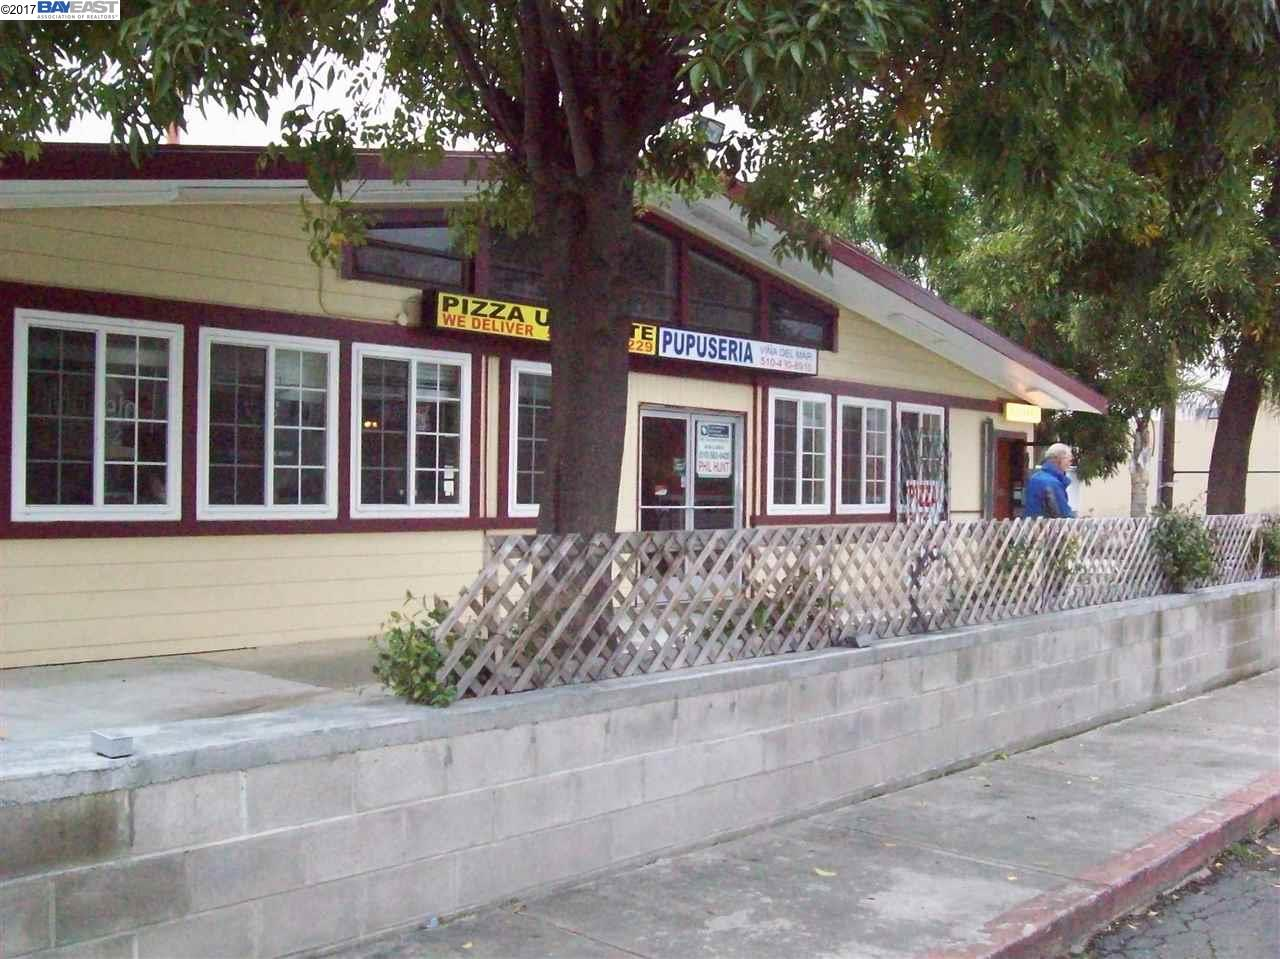 Commercial for Sale at 32681 Mission Blvd 32681 Mission Blvd Hayward, California 94544 United States